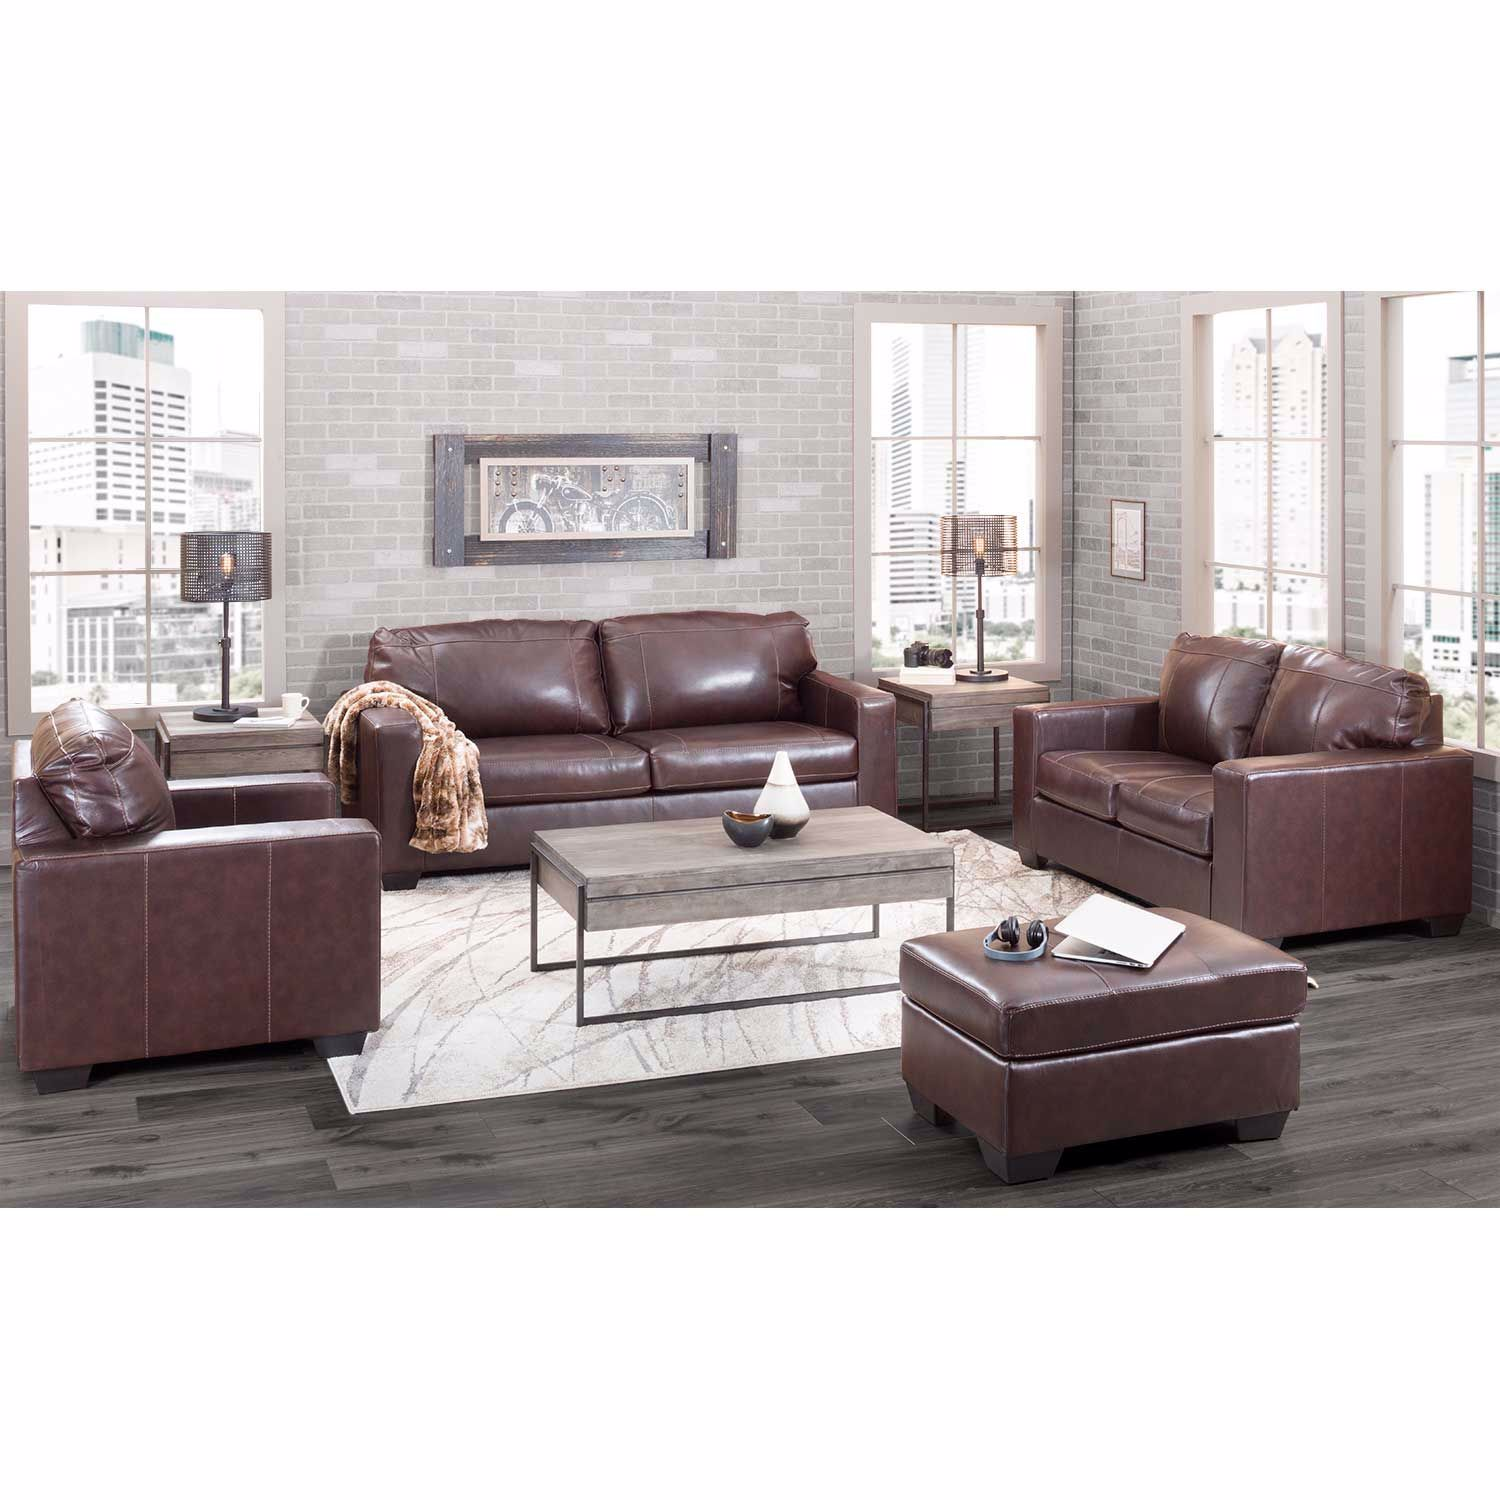 Picture of Morelos Brown Italian Leather Sofa